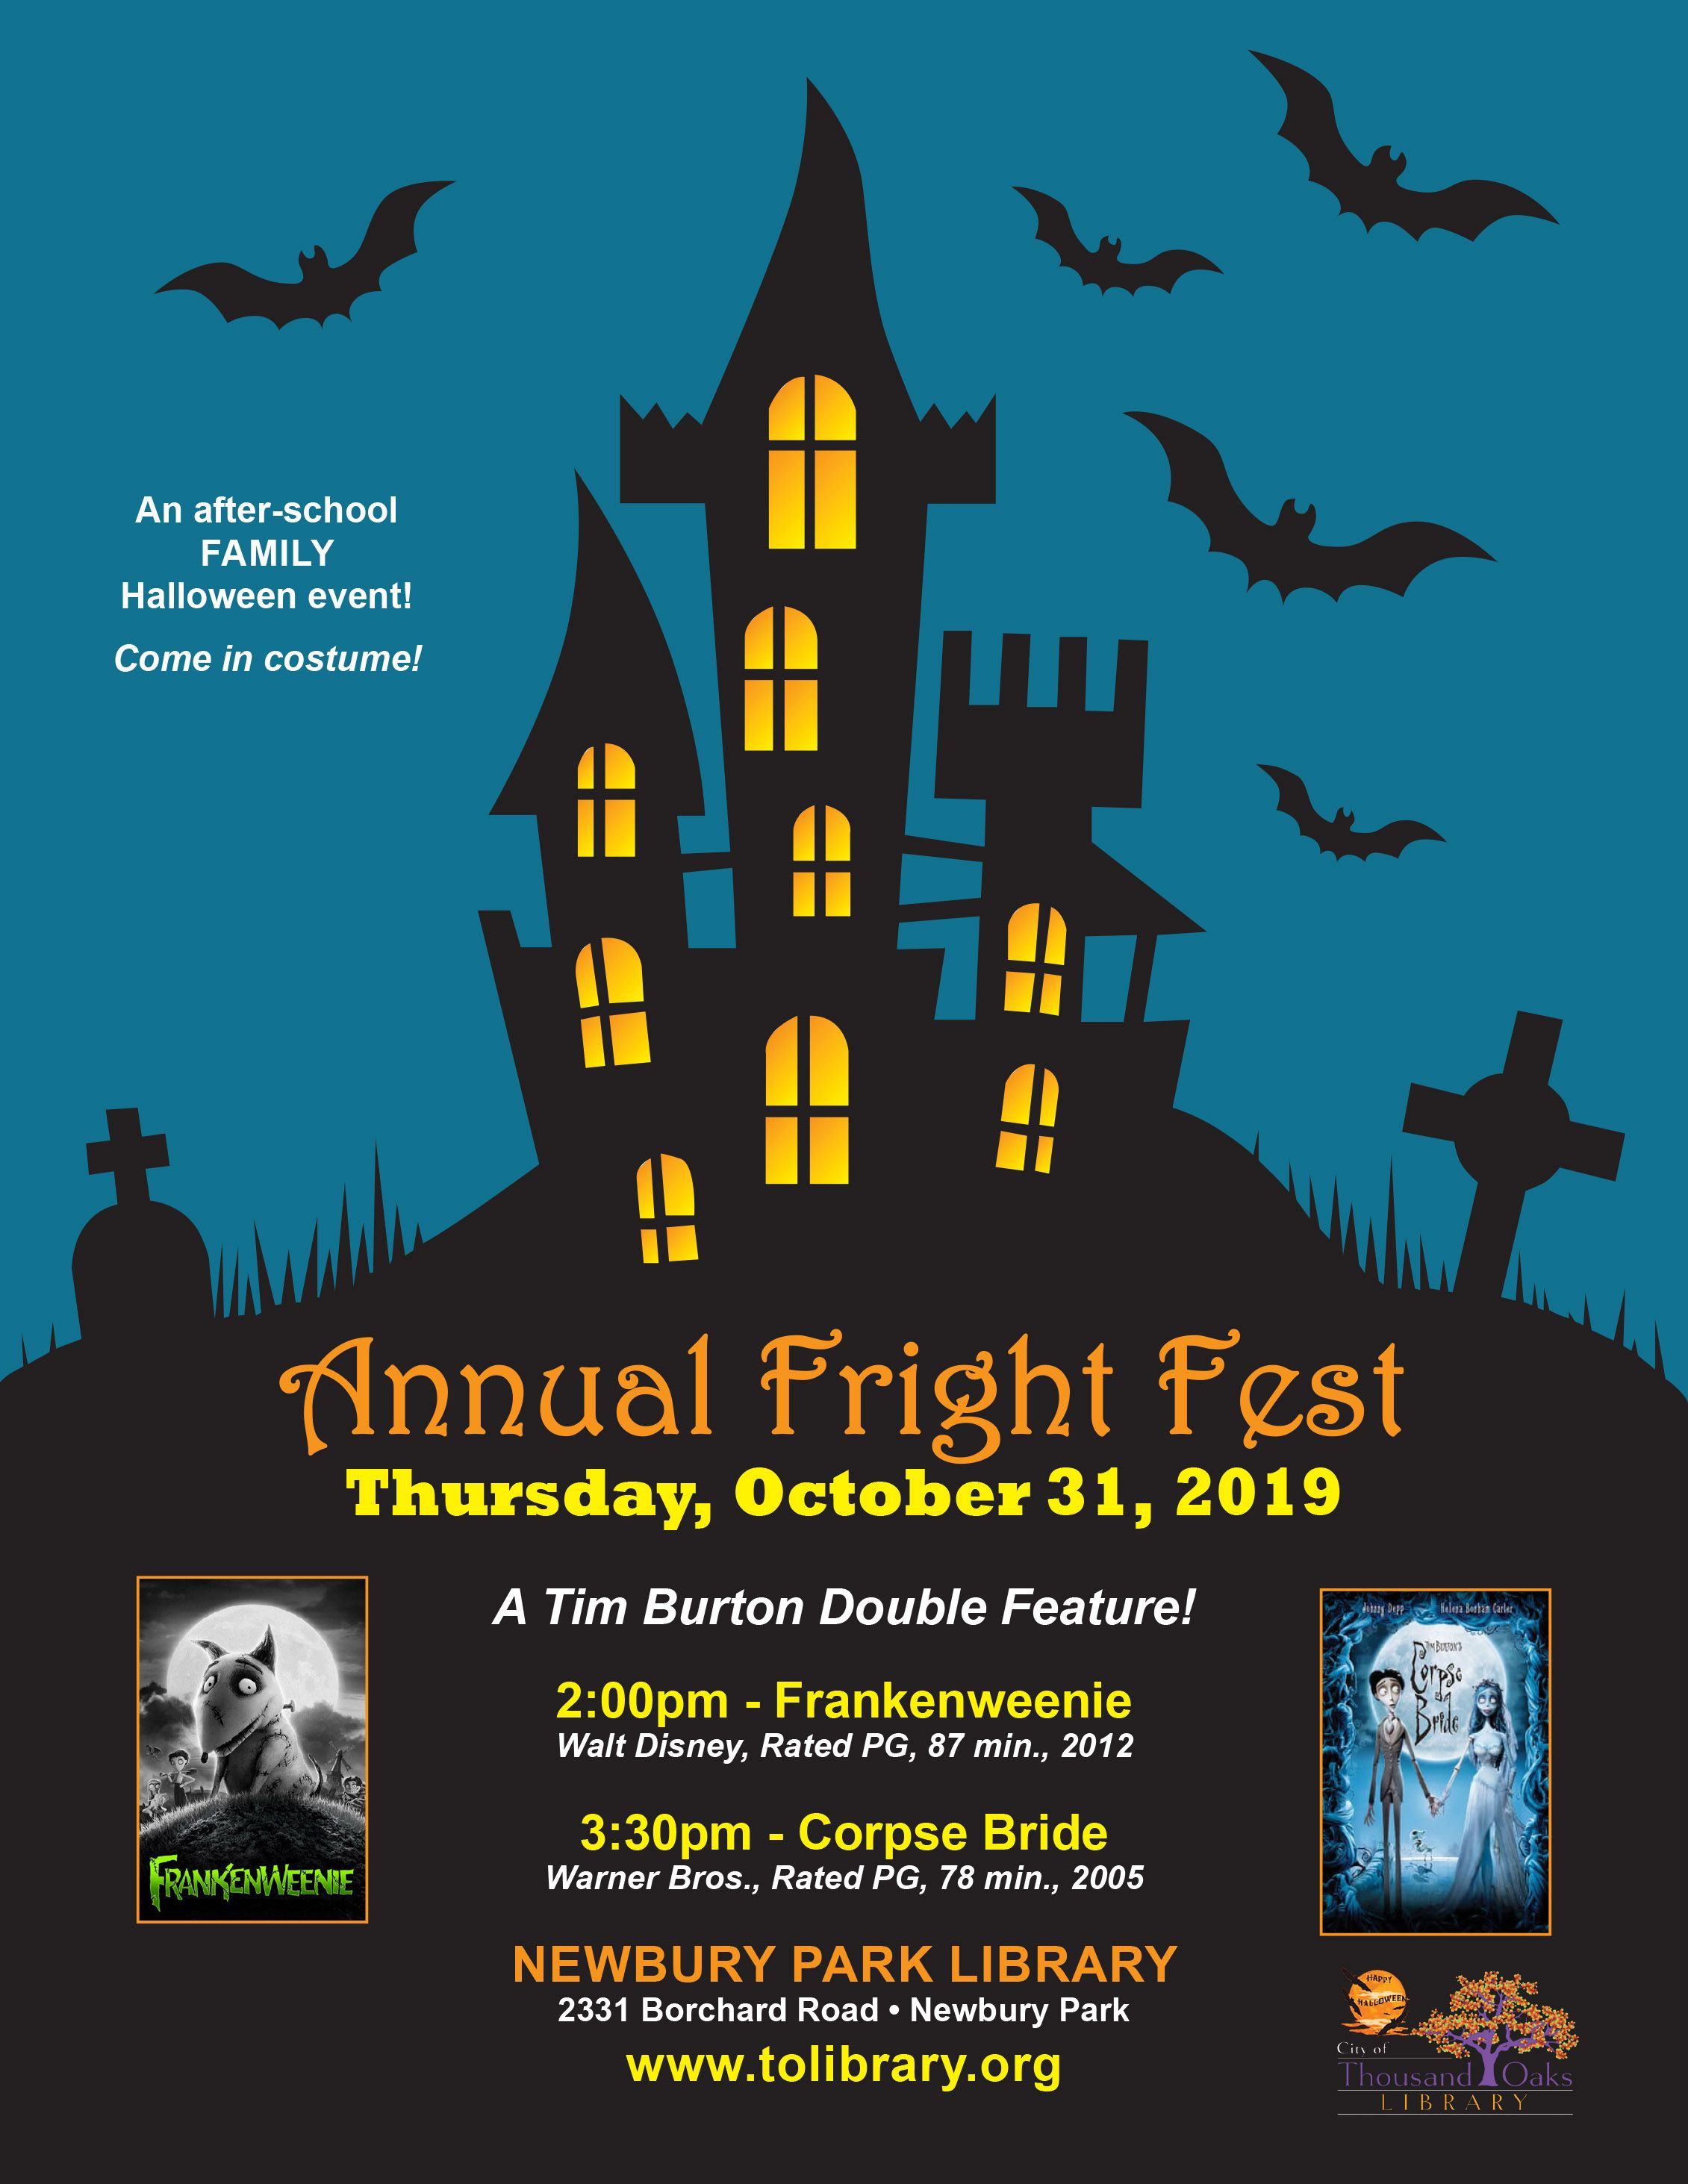 Annual Fright Fest At The Newbury Park Library Oct 31 2019 Halloween School Halloween Event Family Halloween